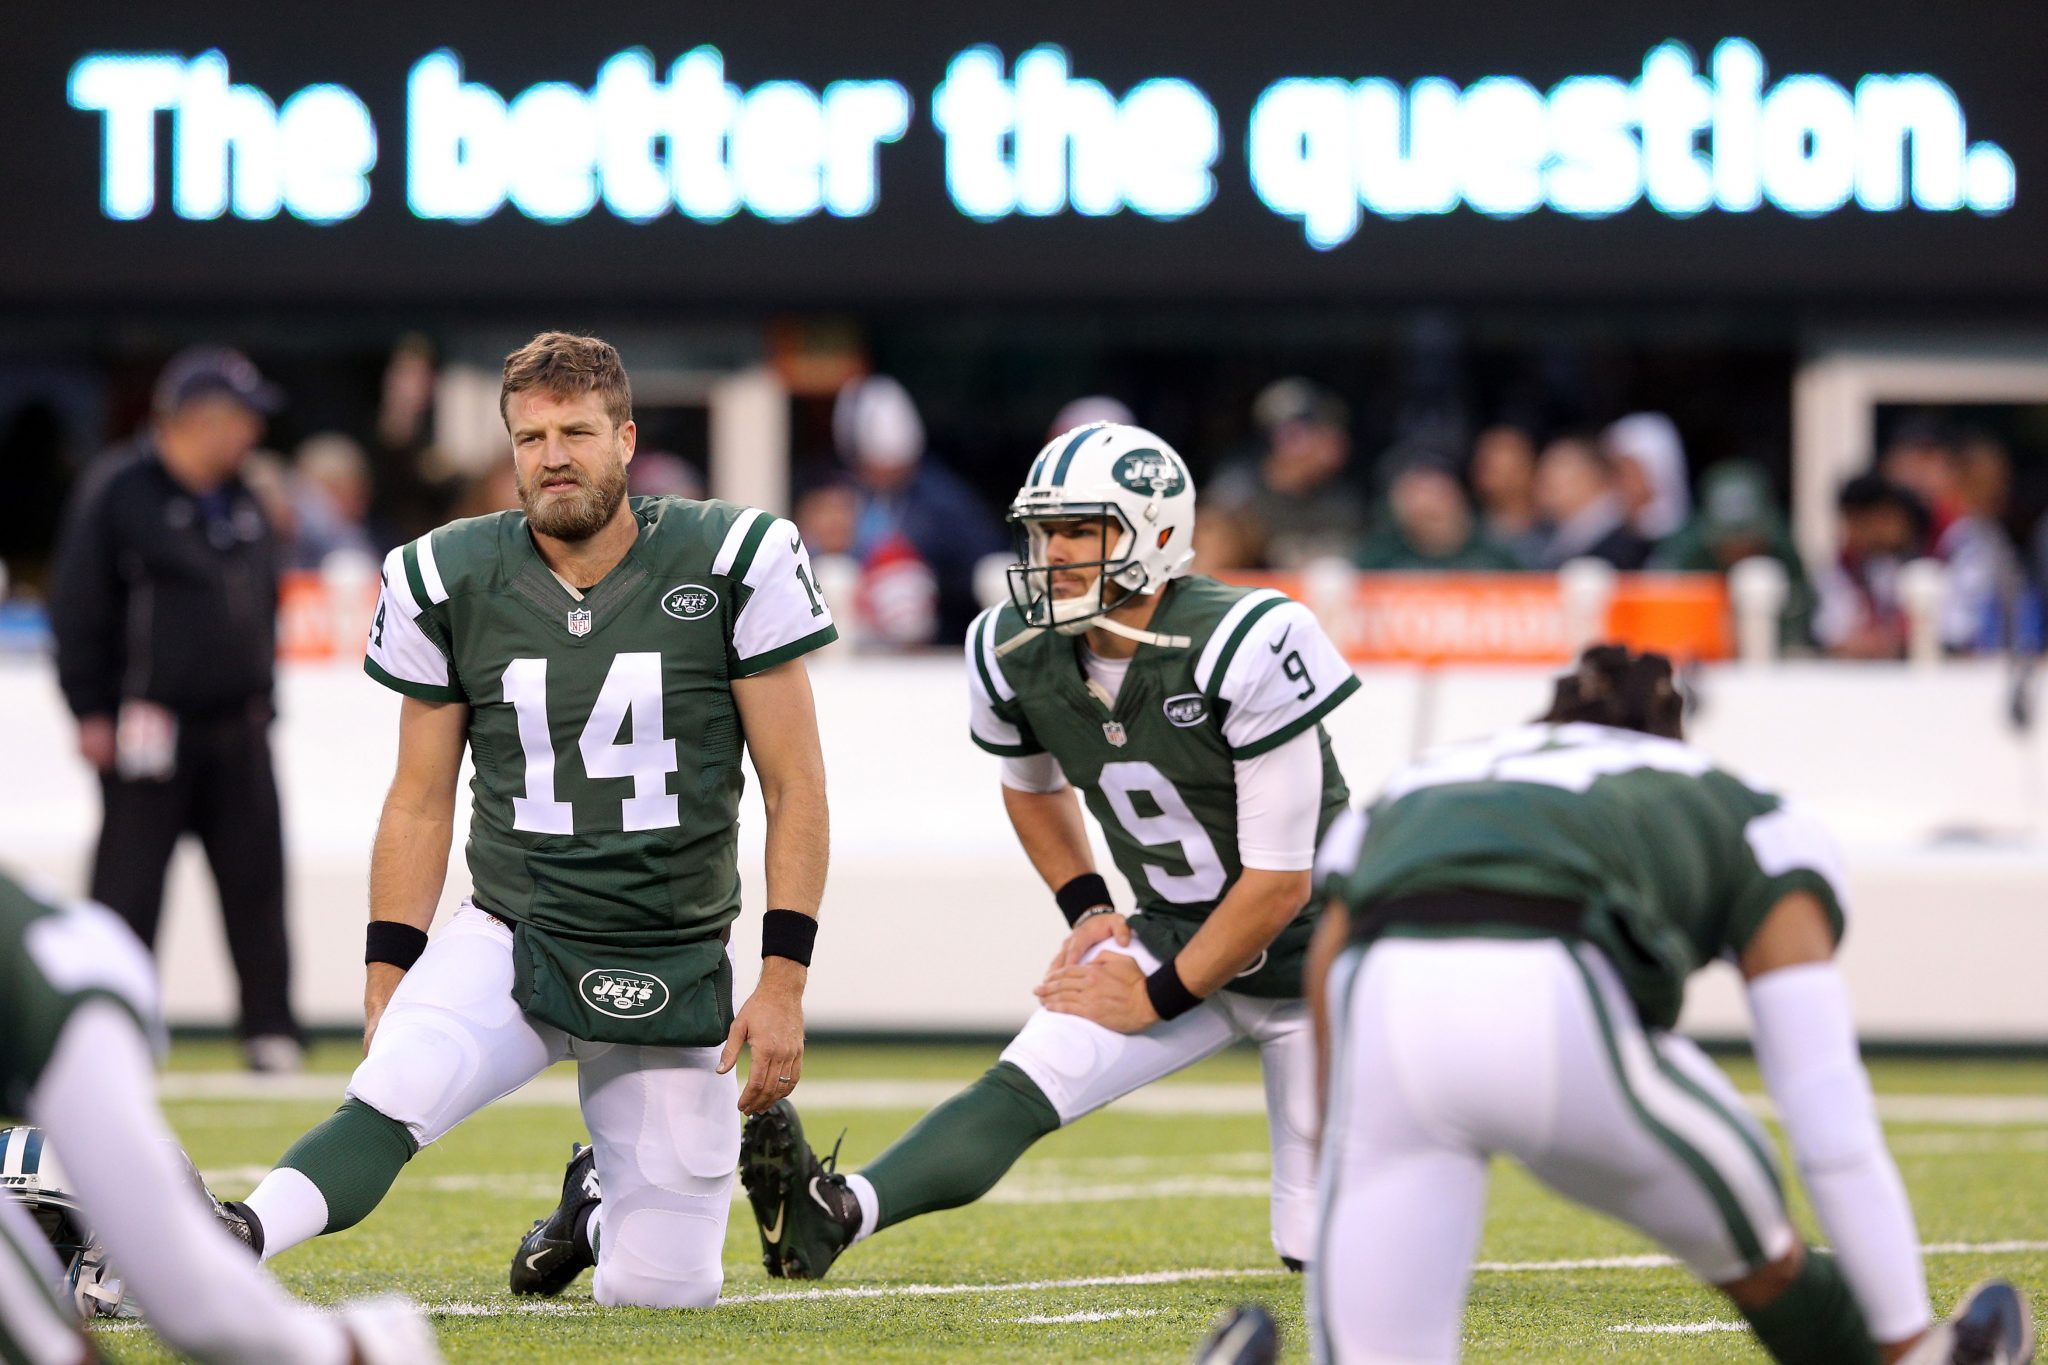 New York Jets QB Ryan Fitzpatrick to Start Monday night against Colts 3